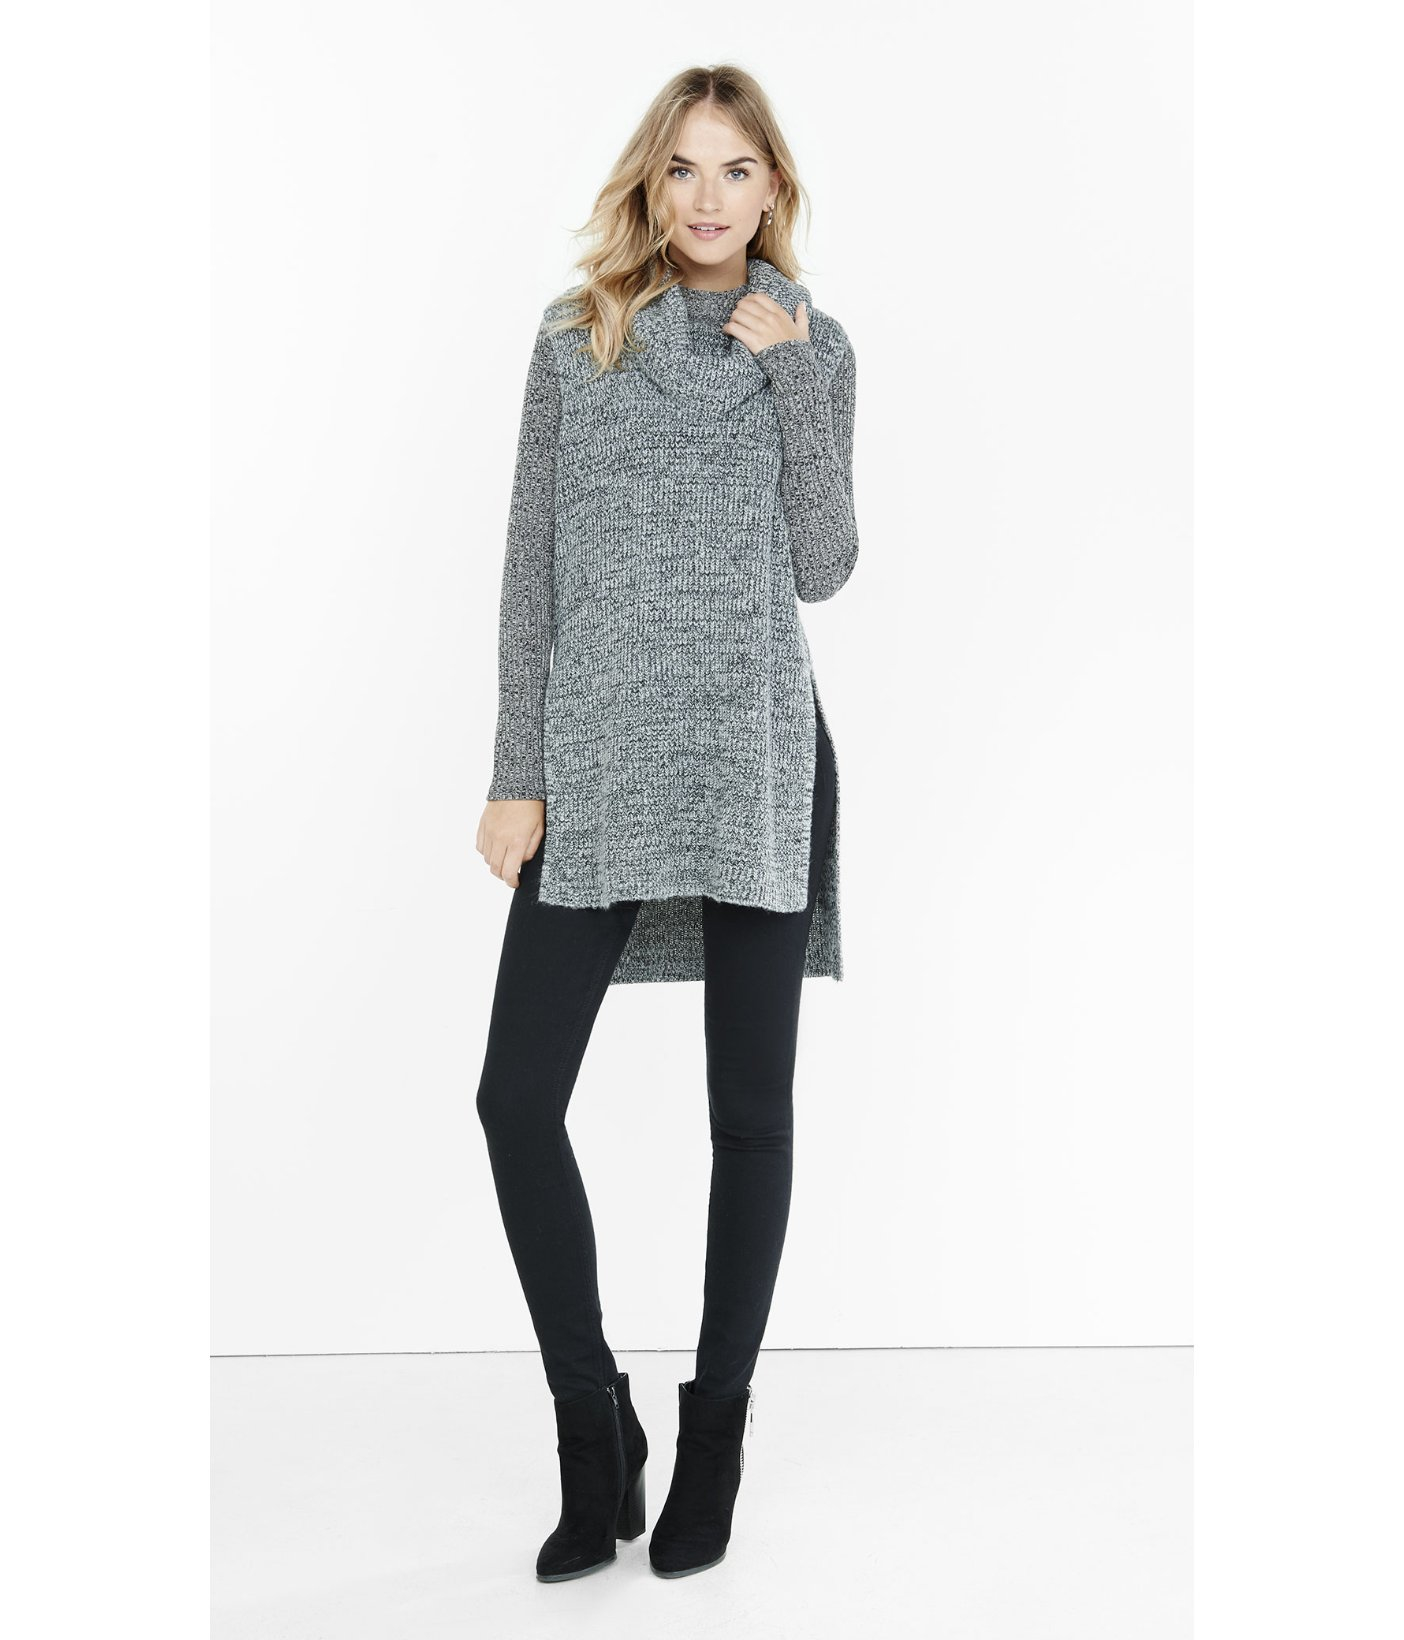 Tunic Sweater Side Slits - Cashmere Sweater England